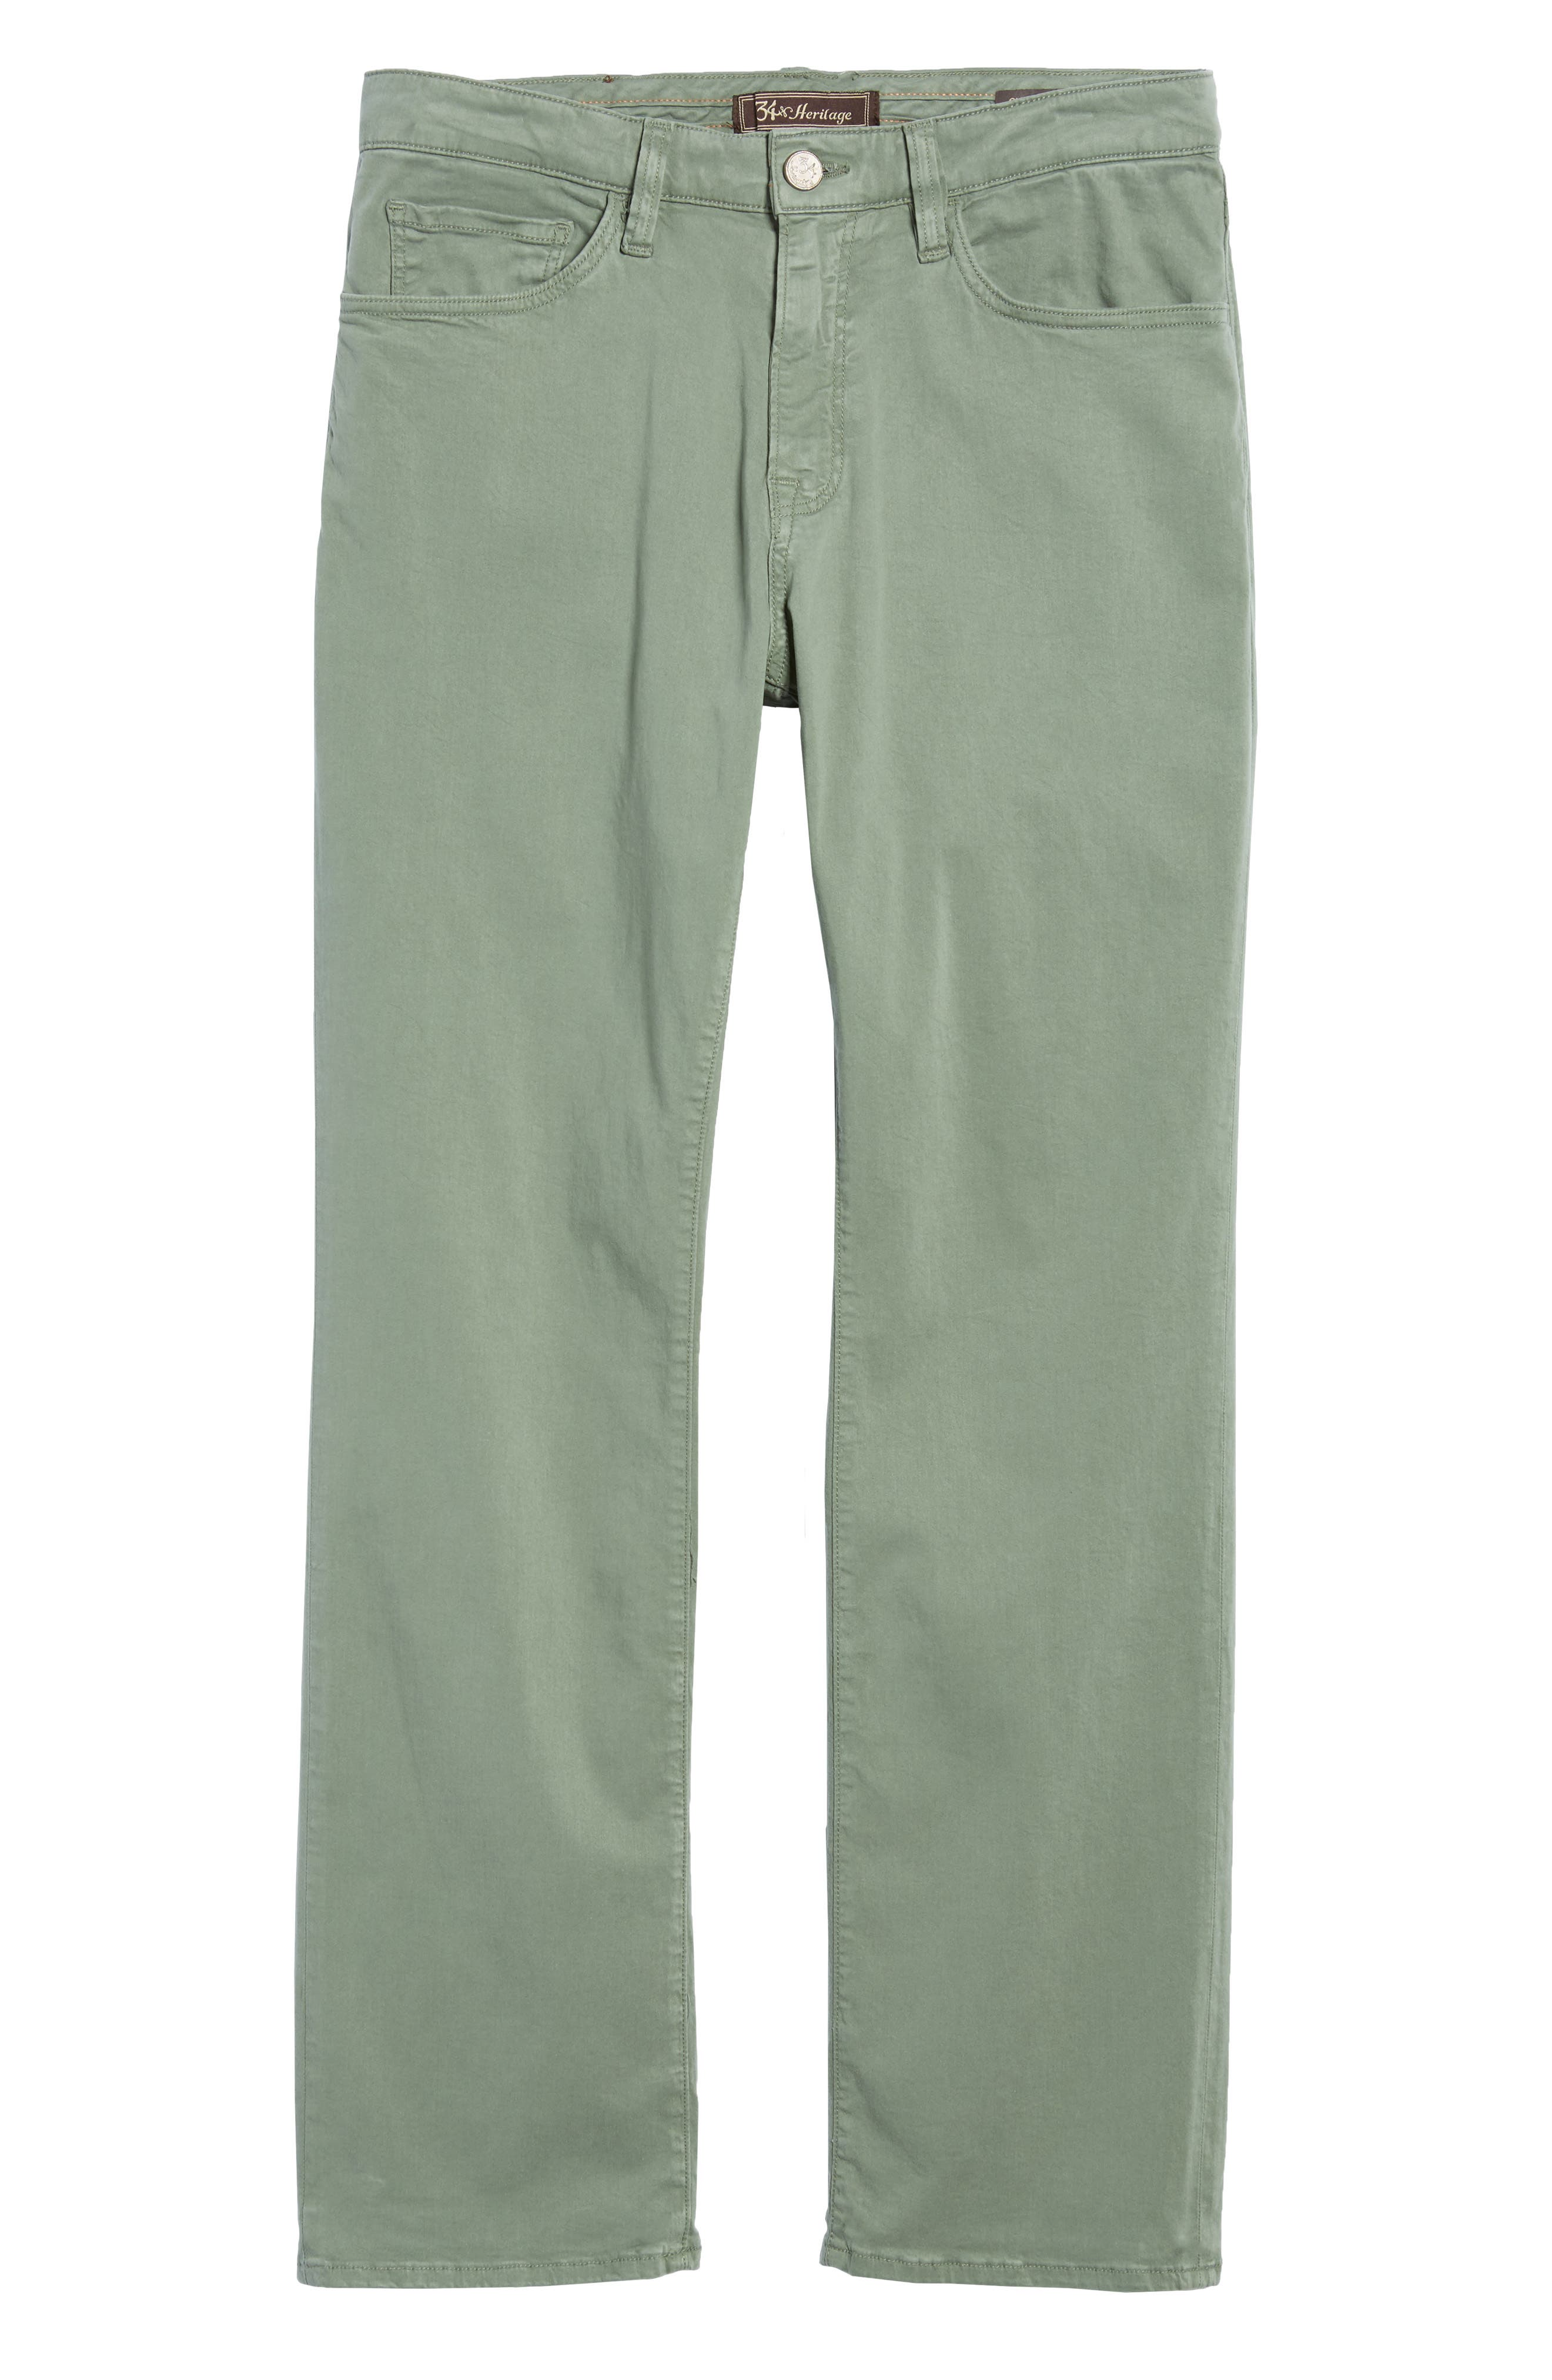 34 HERITAGE,                             Charisma Relaxed Fit Twill Pants,                             Alternate thumbnail 6, color,                             MOSS TWILL